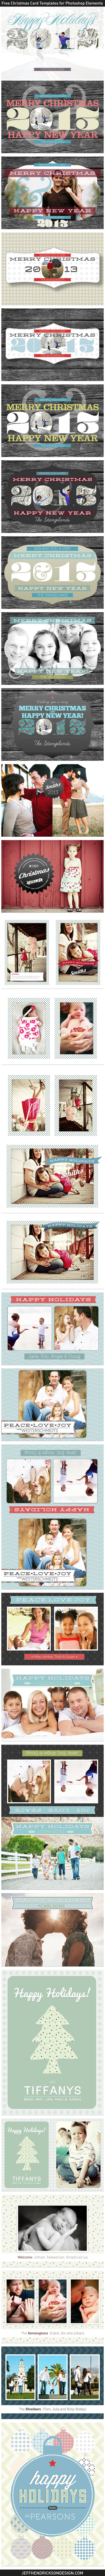 Free Christmas Card Templates For Photoshop Elements Christmas Card Templates Free Christmas Cards Free Christmas Card Template